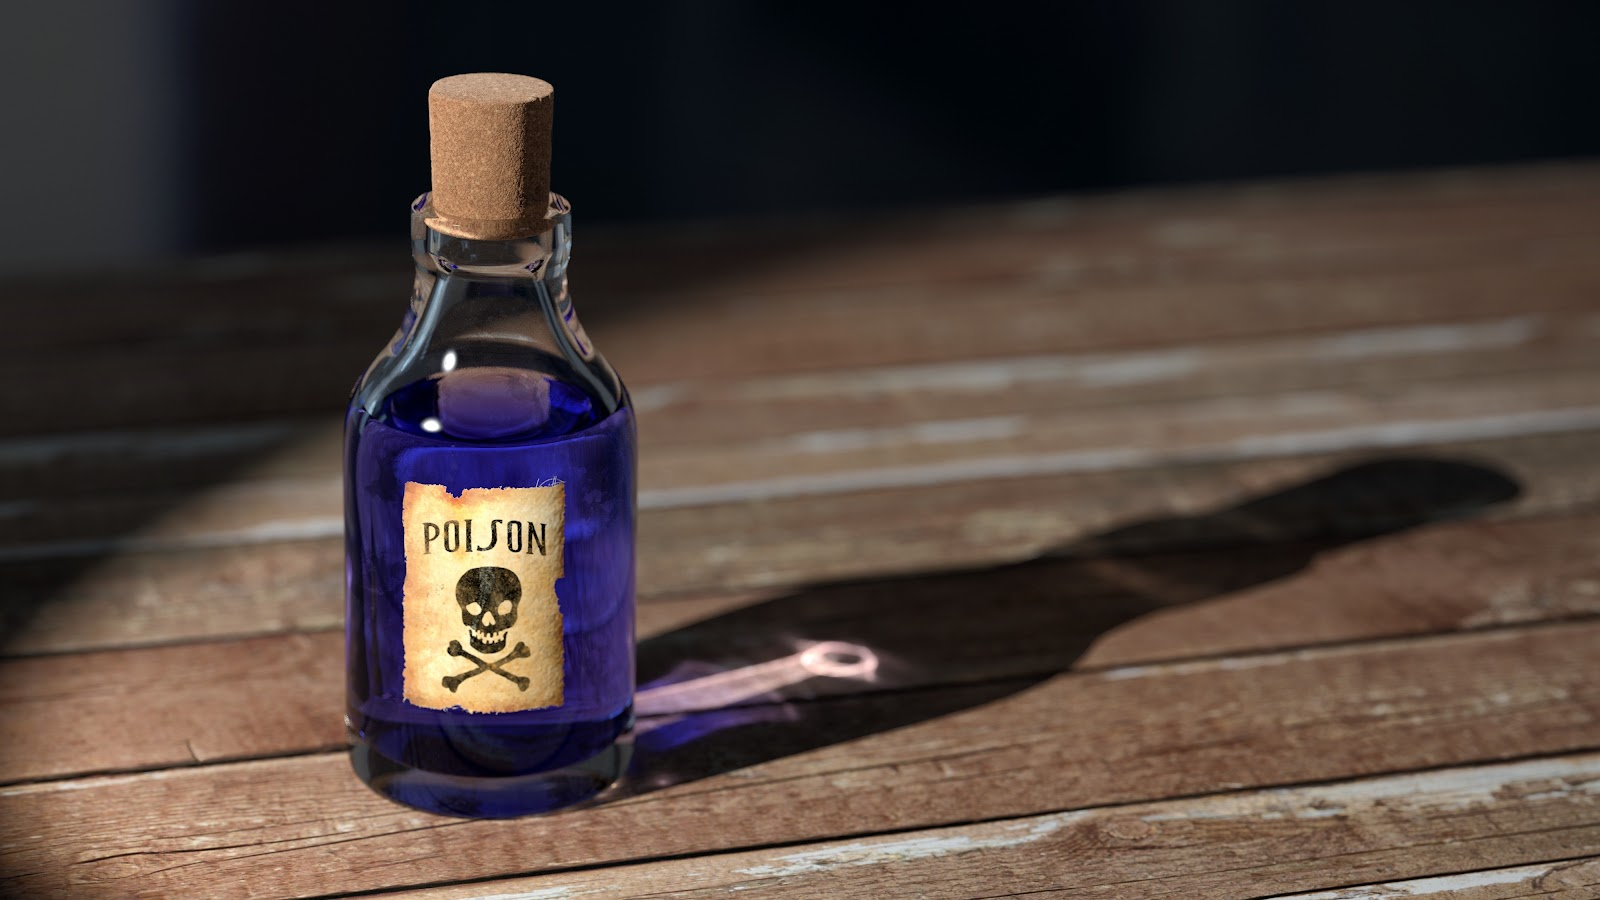 A small glass bottle of purple liquid labeled with a skull and cross bones.